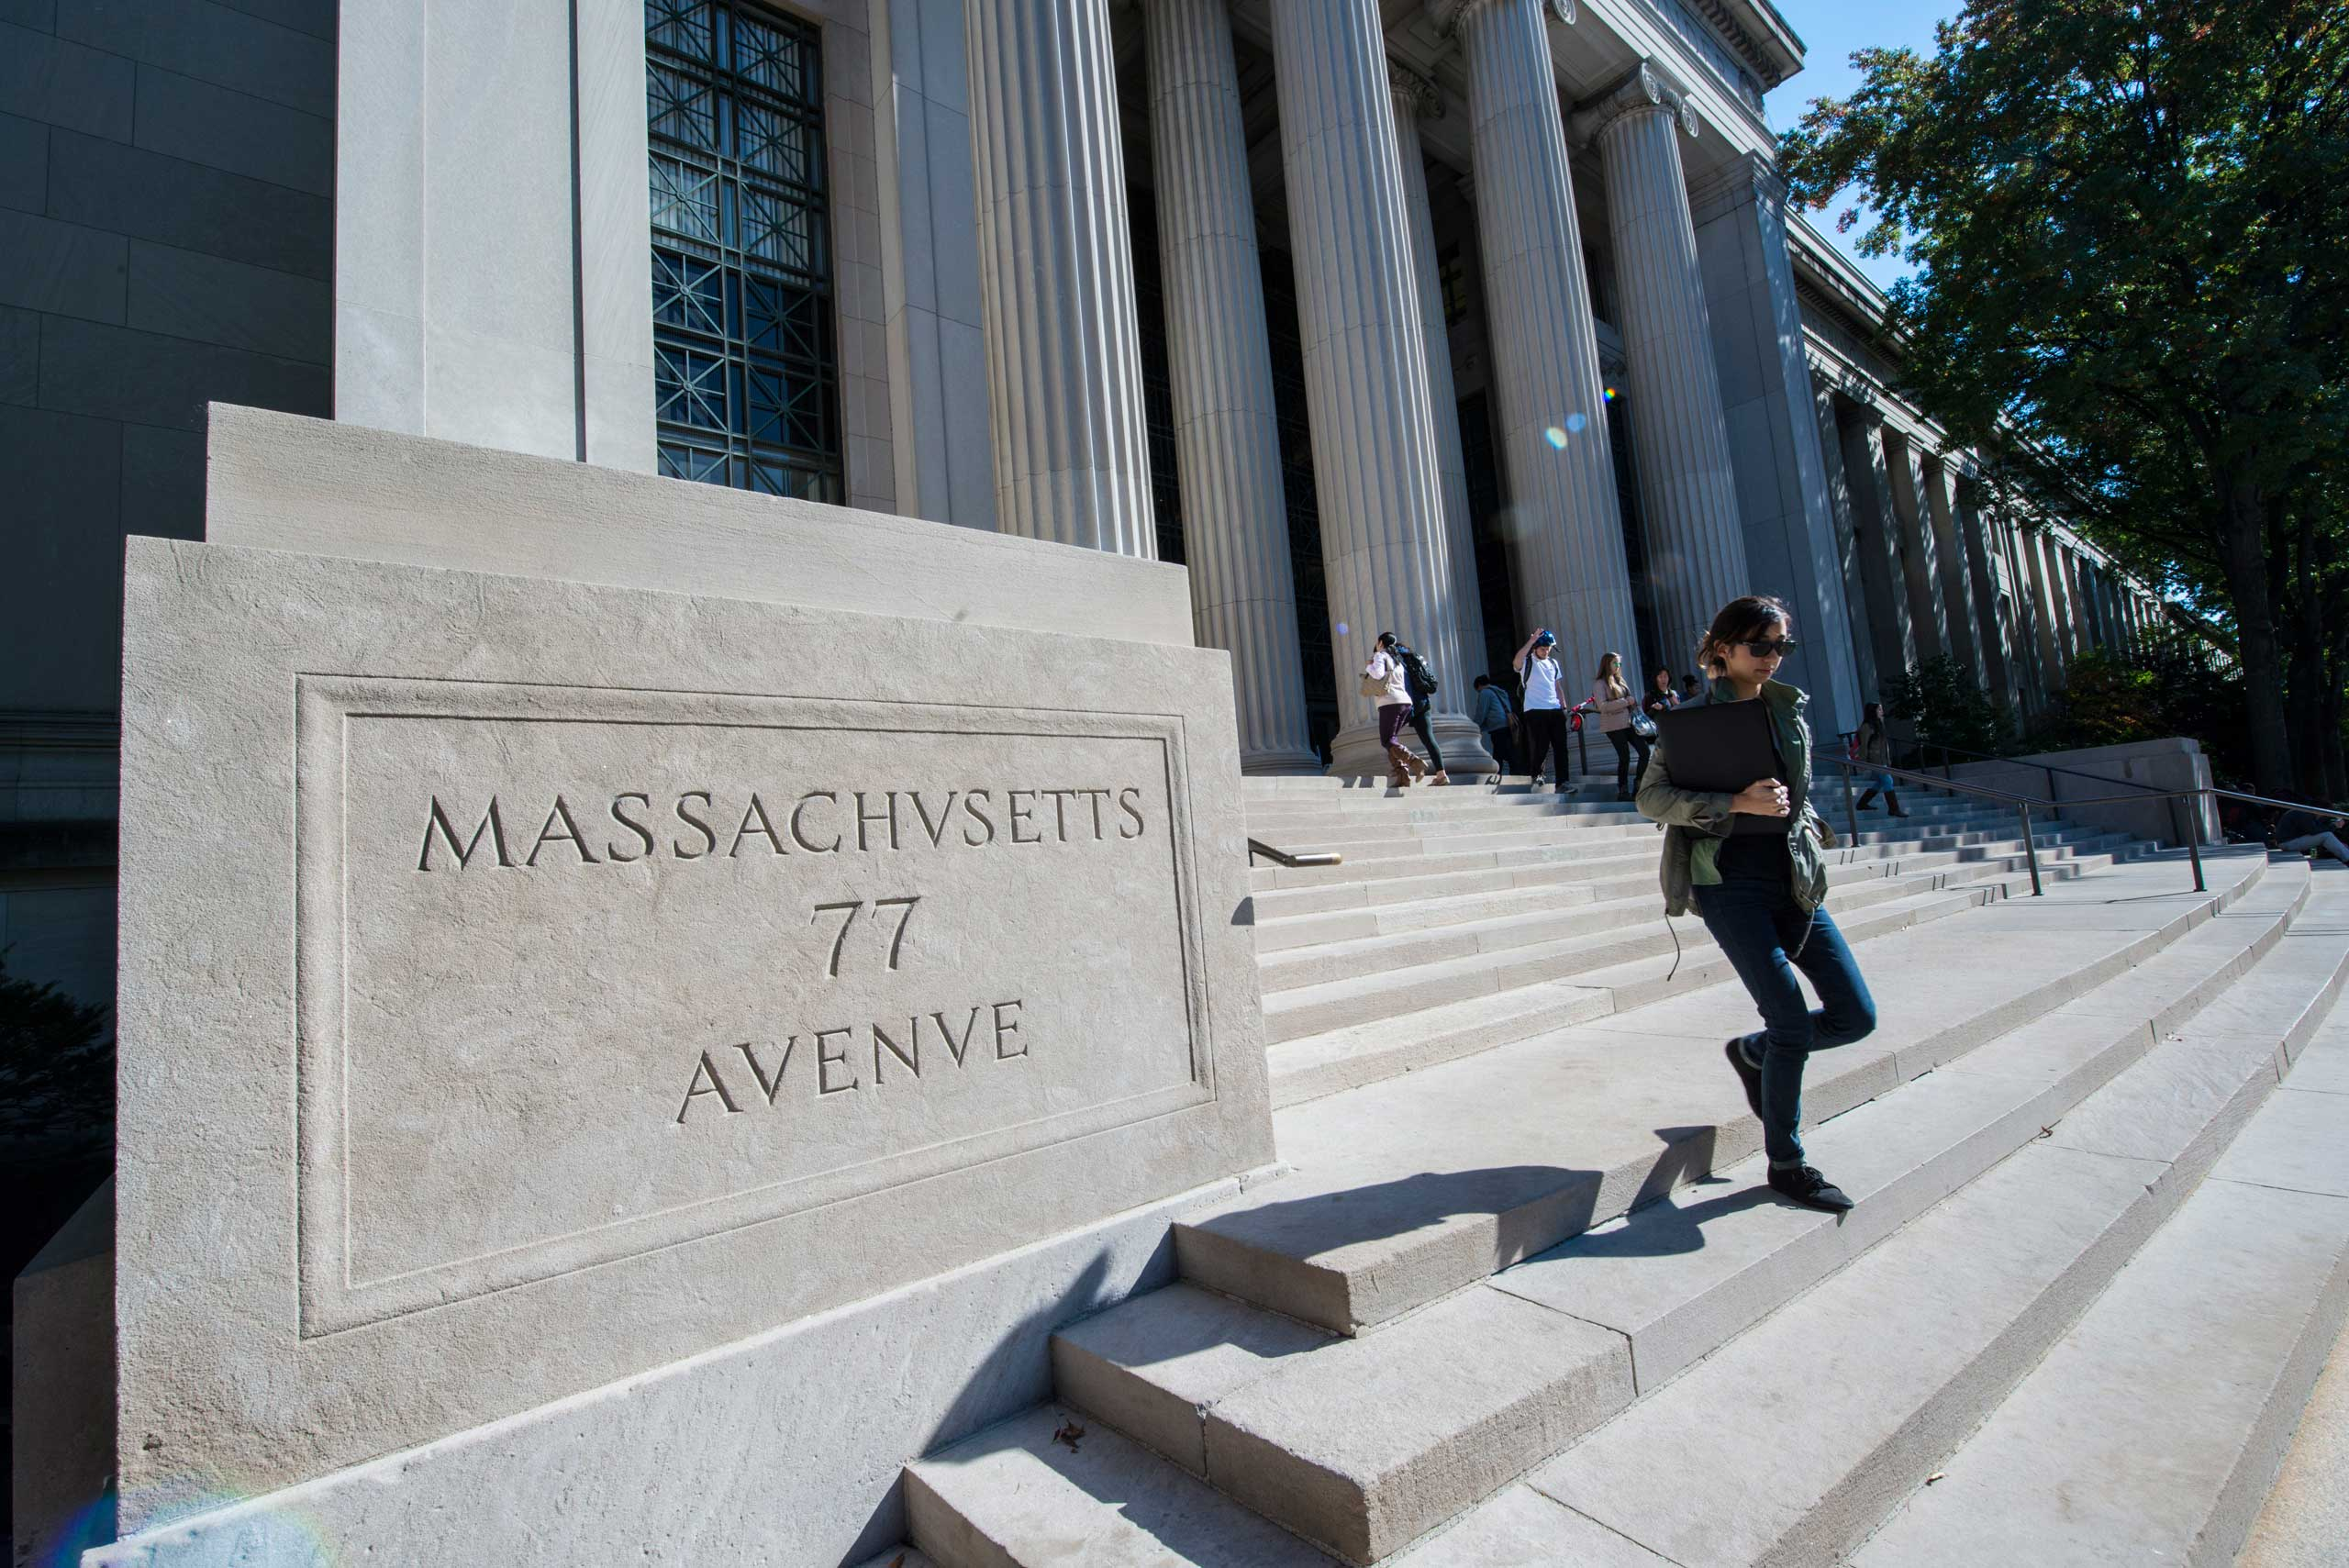 The main entrance to the Massachusetts Institute of Technology in Cambridge, Mass.